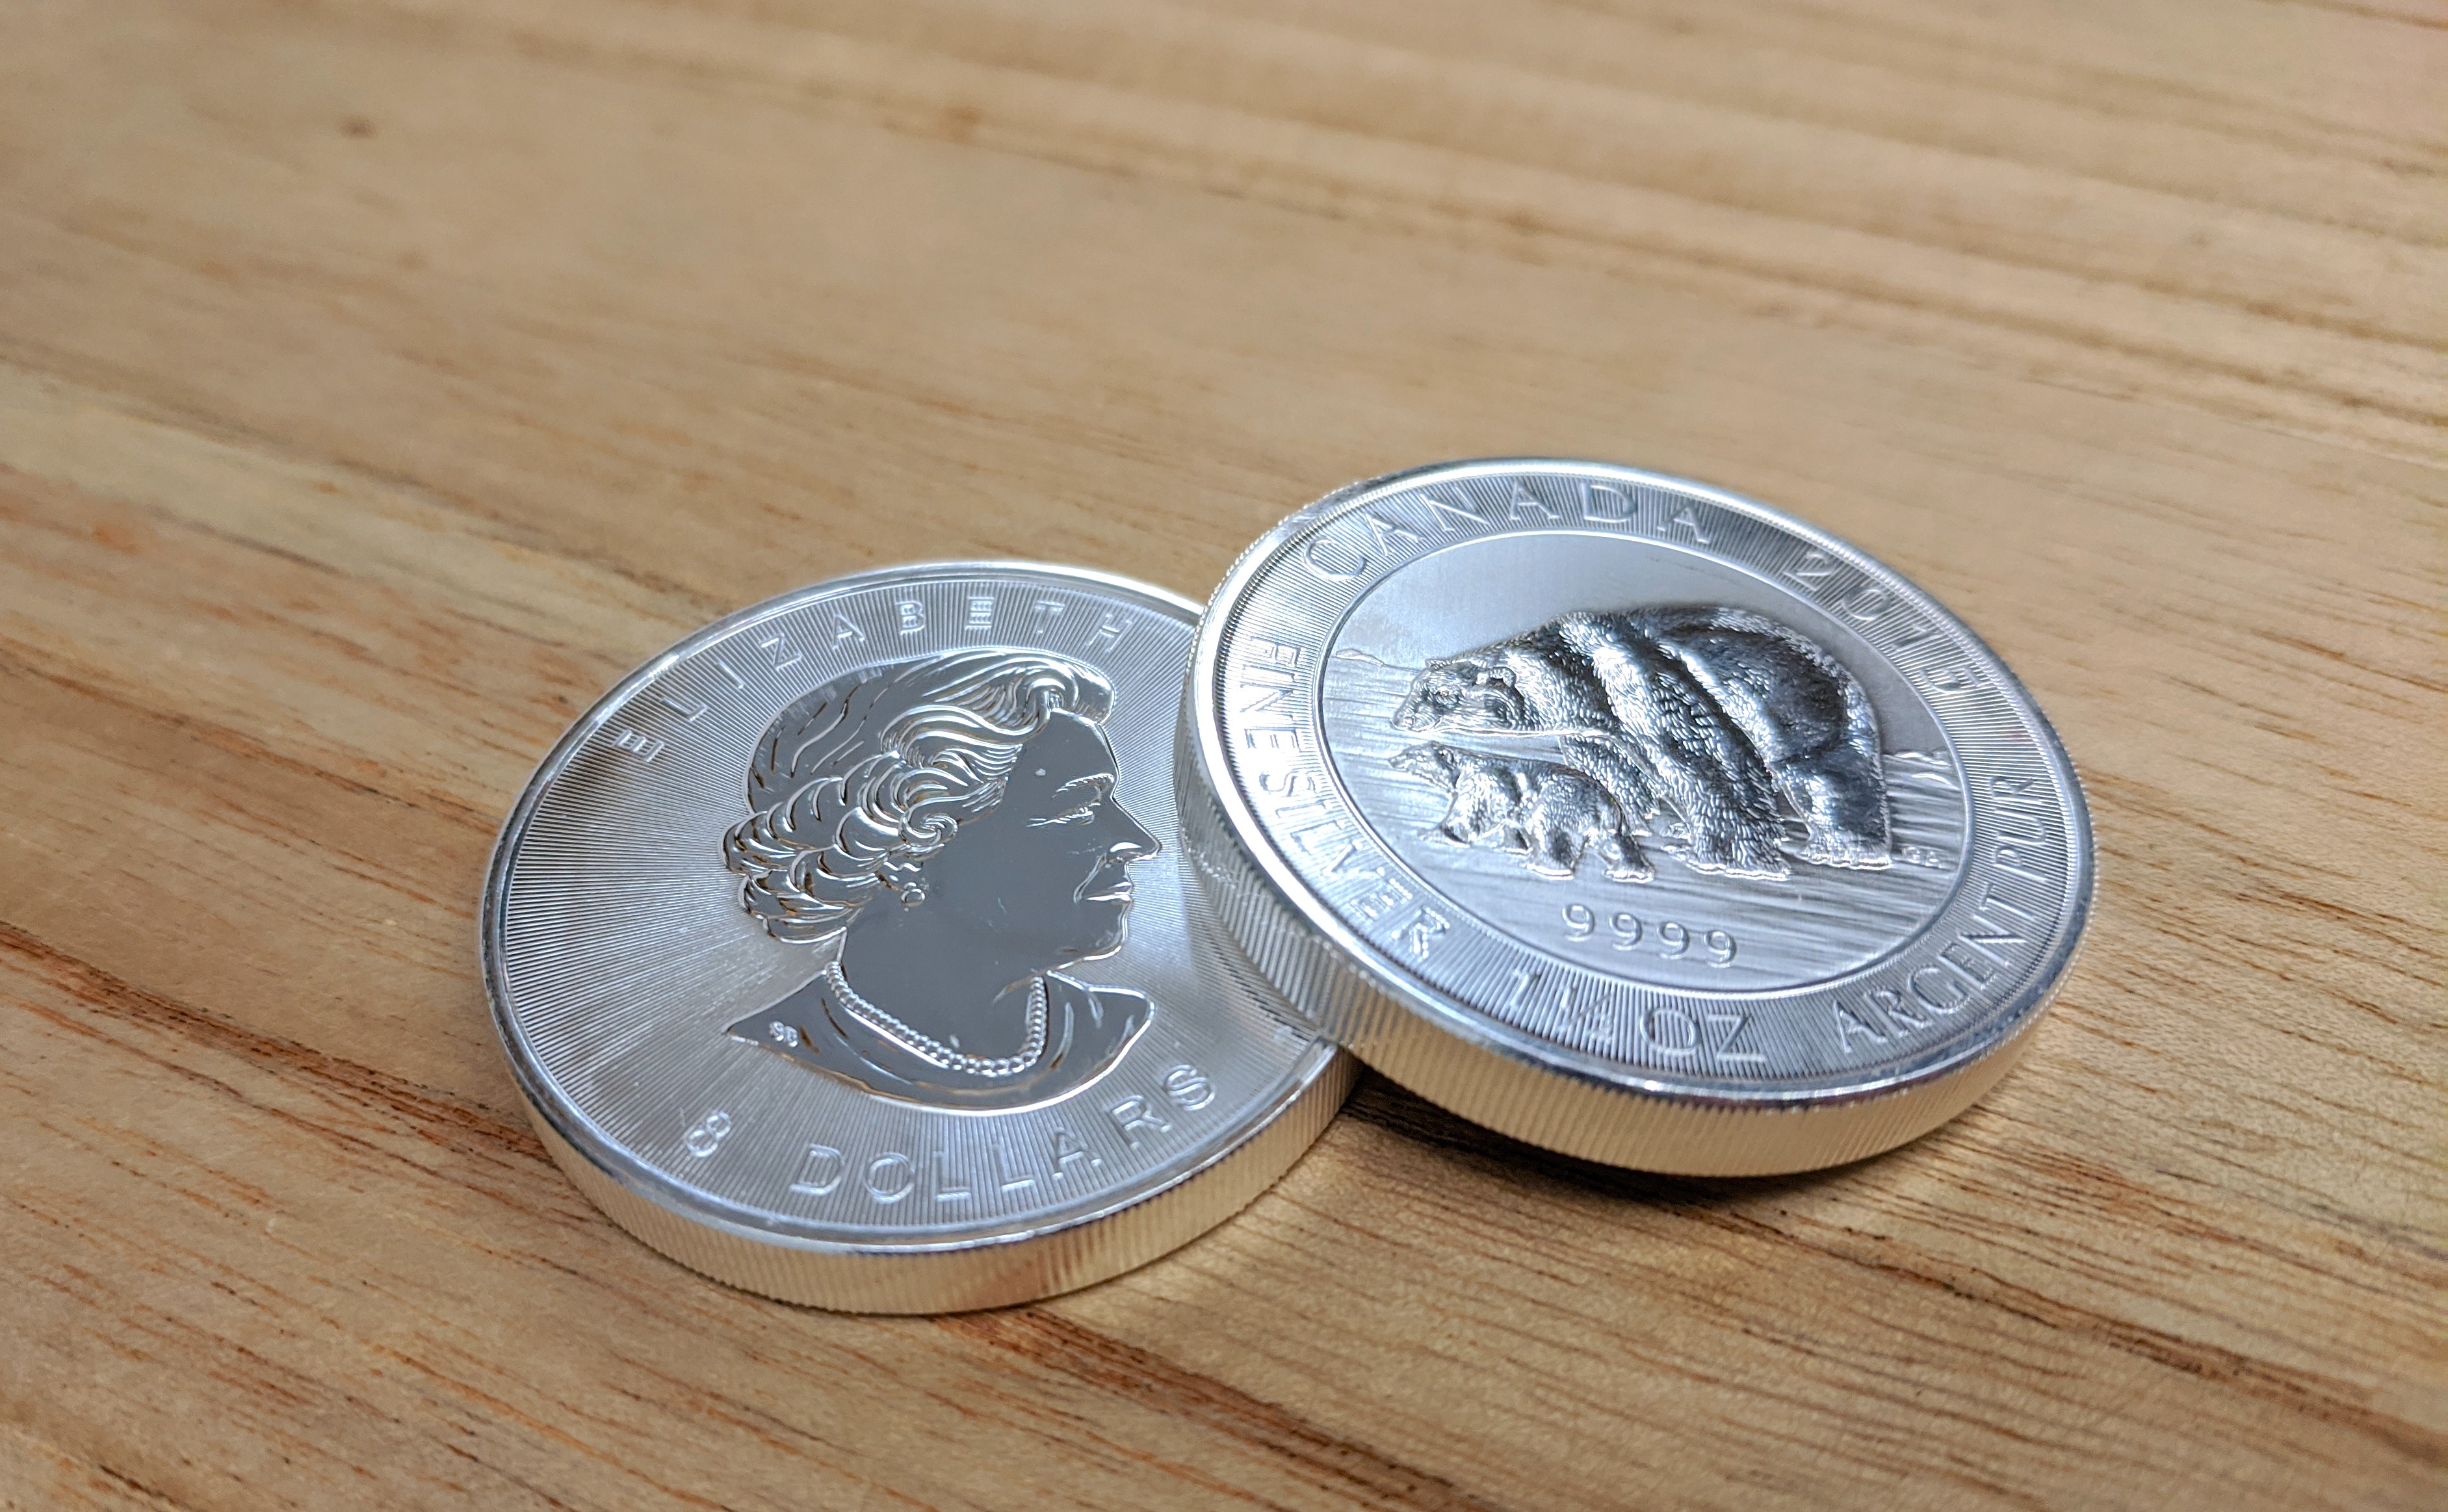 Two silver coins, with a polar bear and a cub on one side.